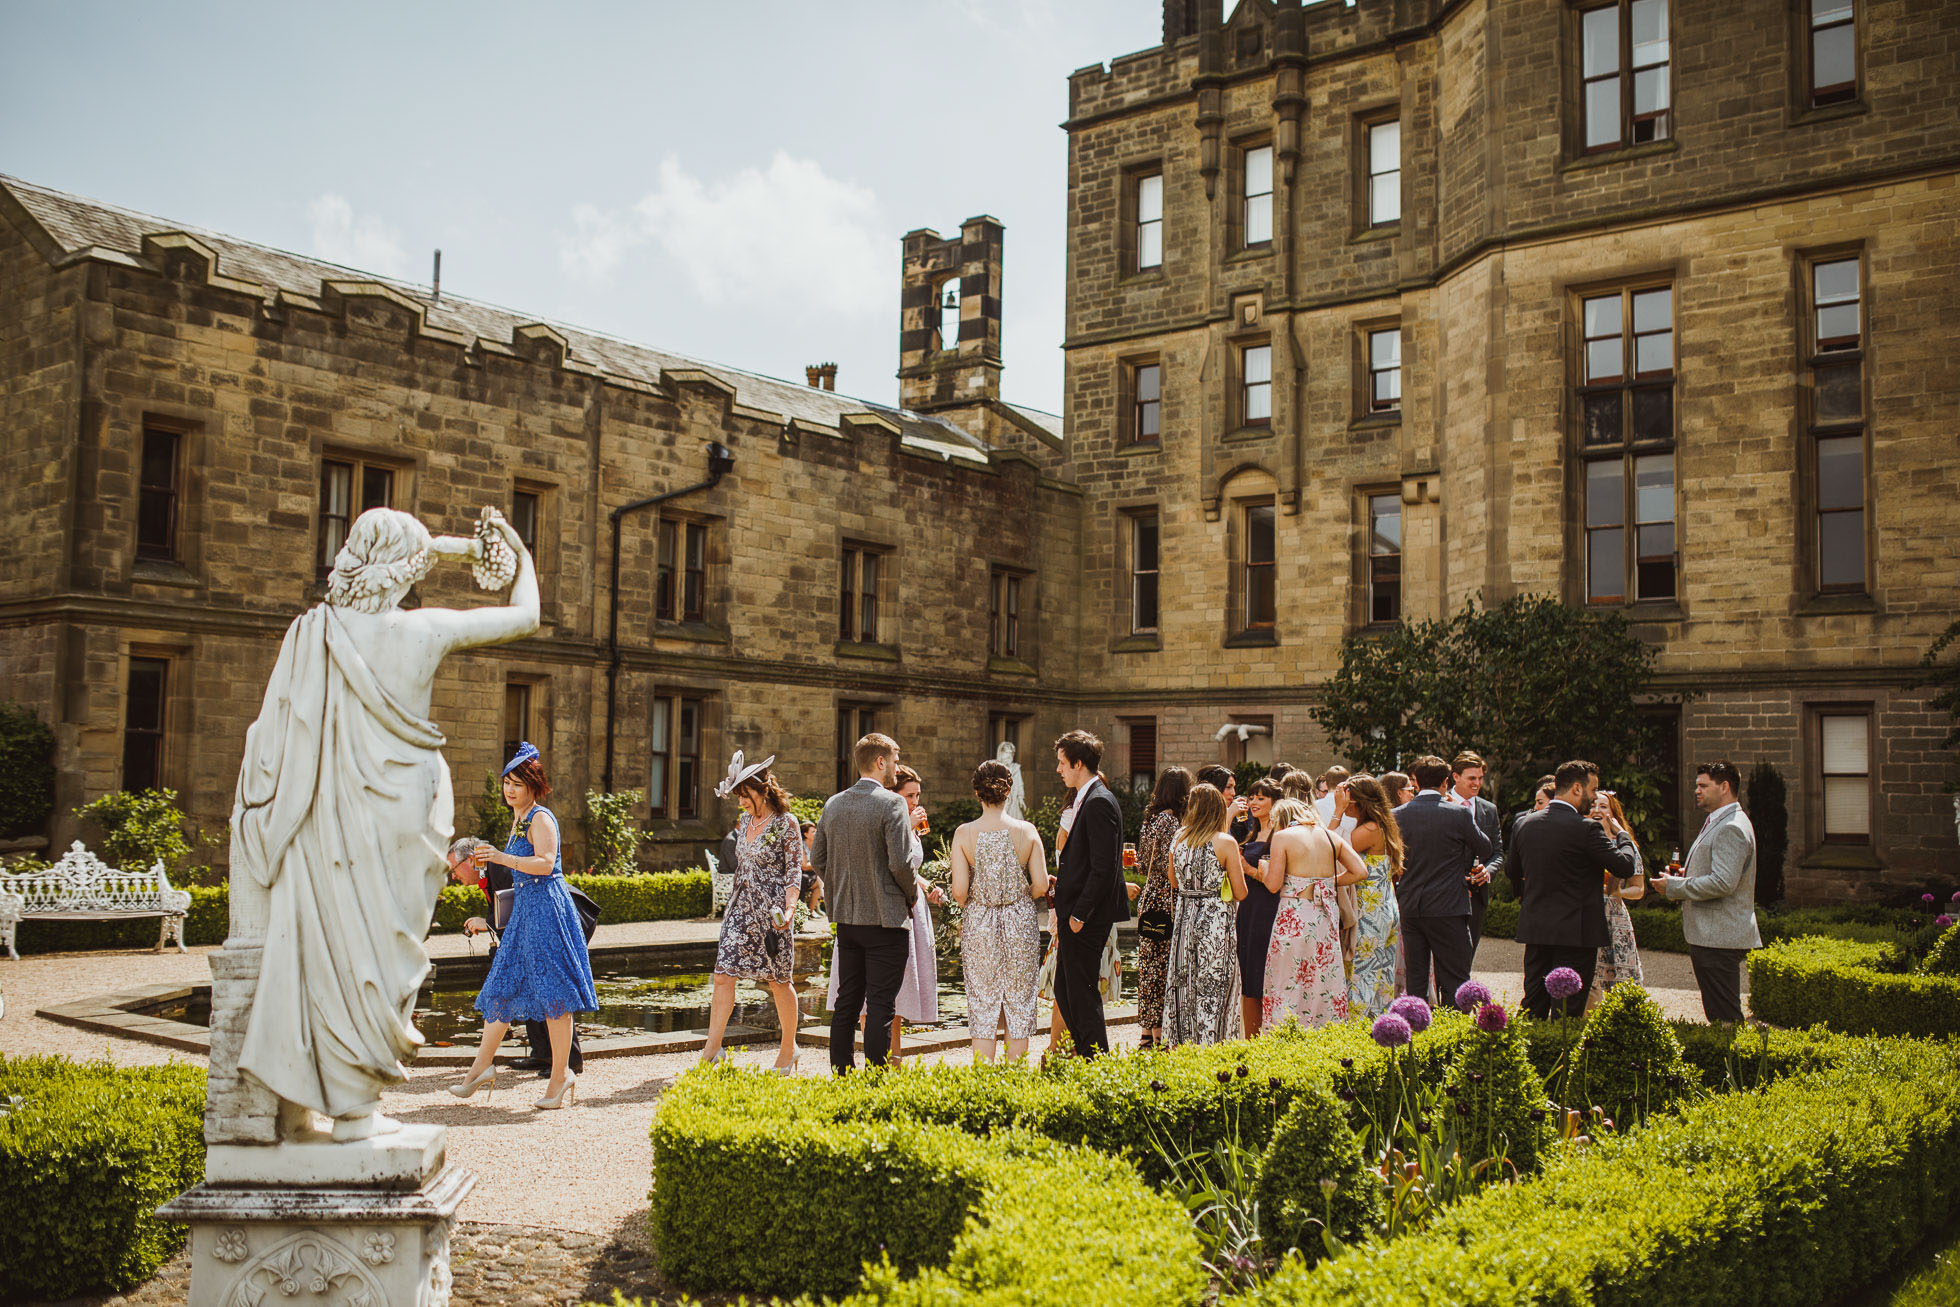 allerton_castle_wedding_photographer-53.jpg